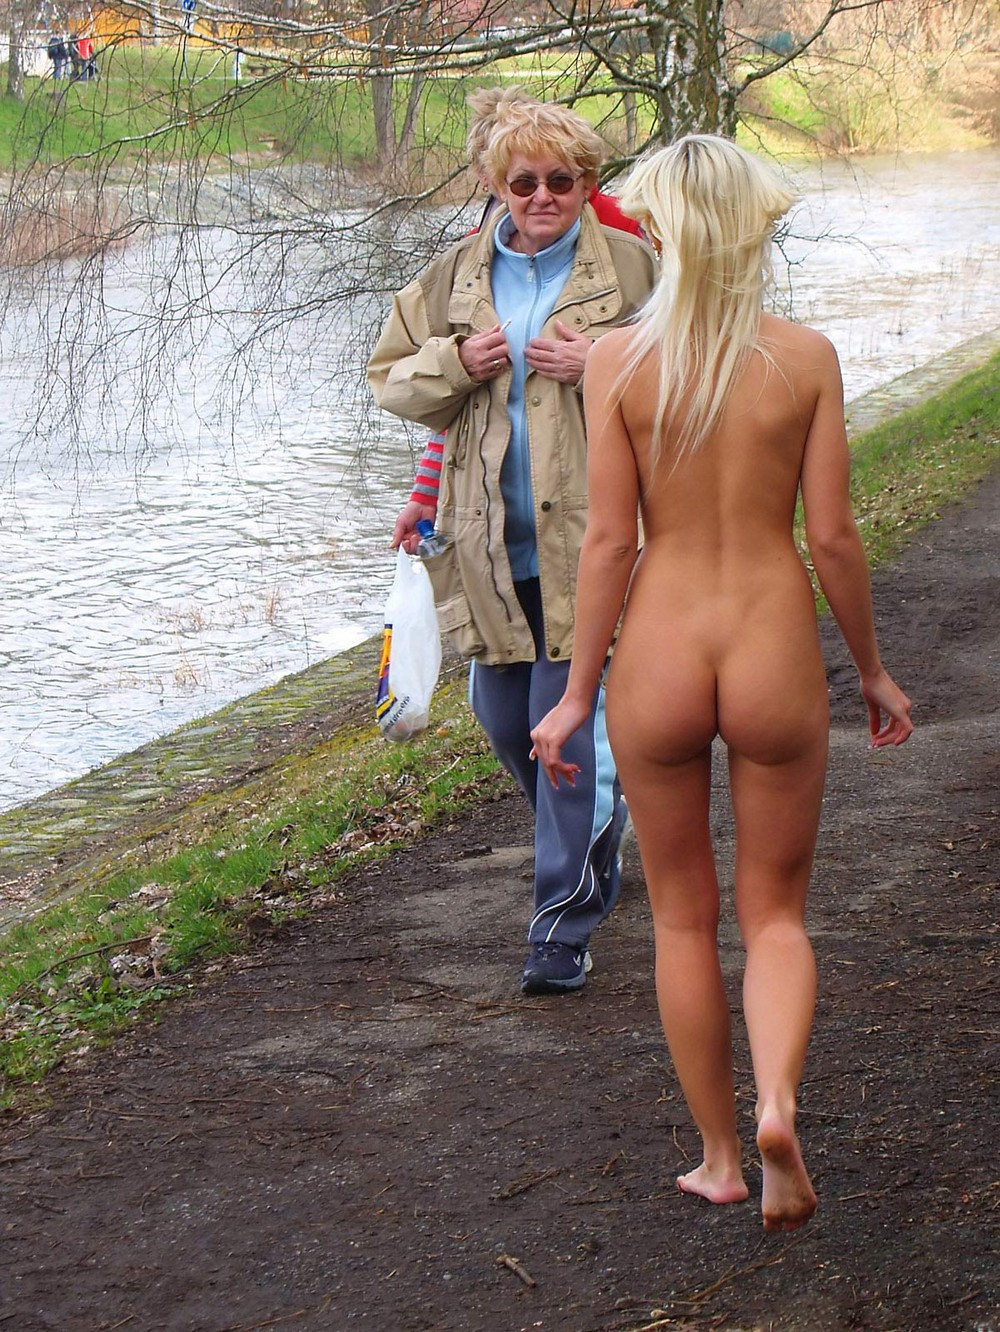 naked-girls-in-public-mix-vol5-72